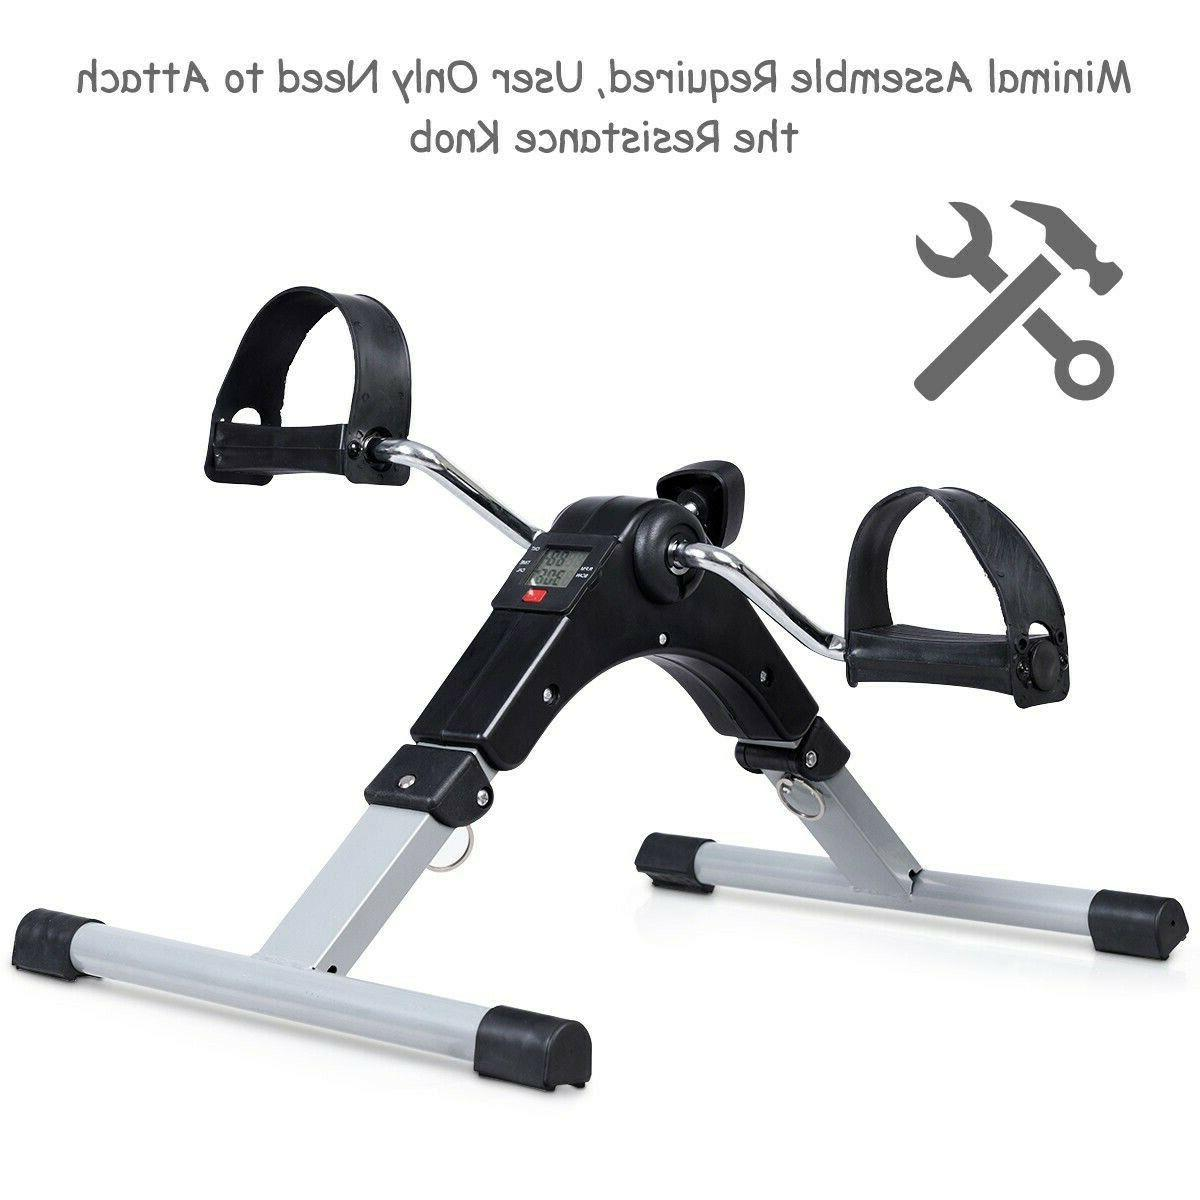 Exercise Bike Stable Durable Construction Display for Arms Legs